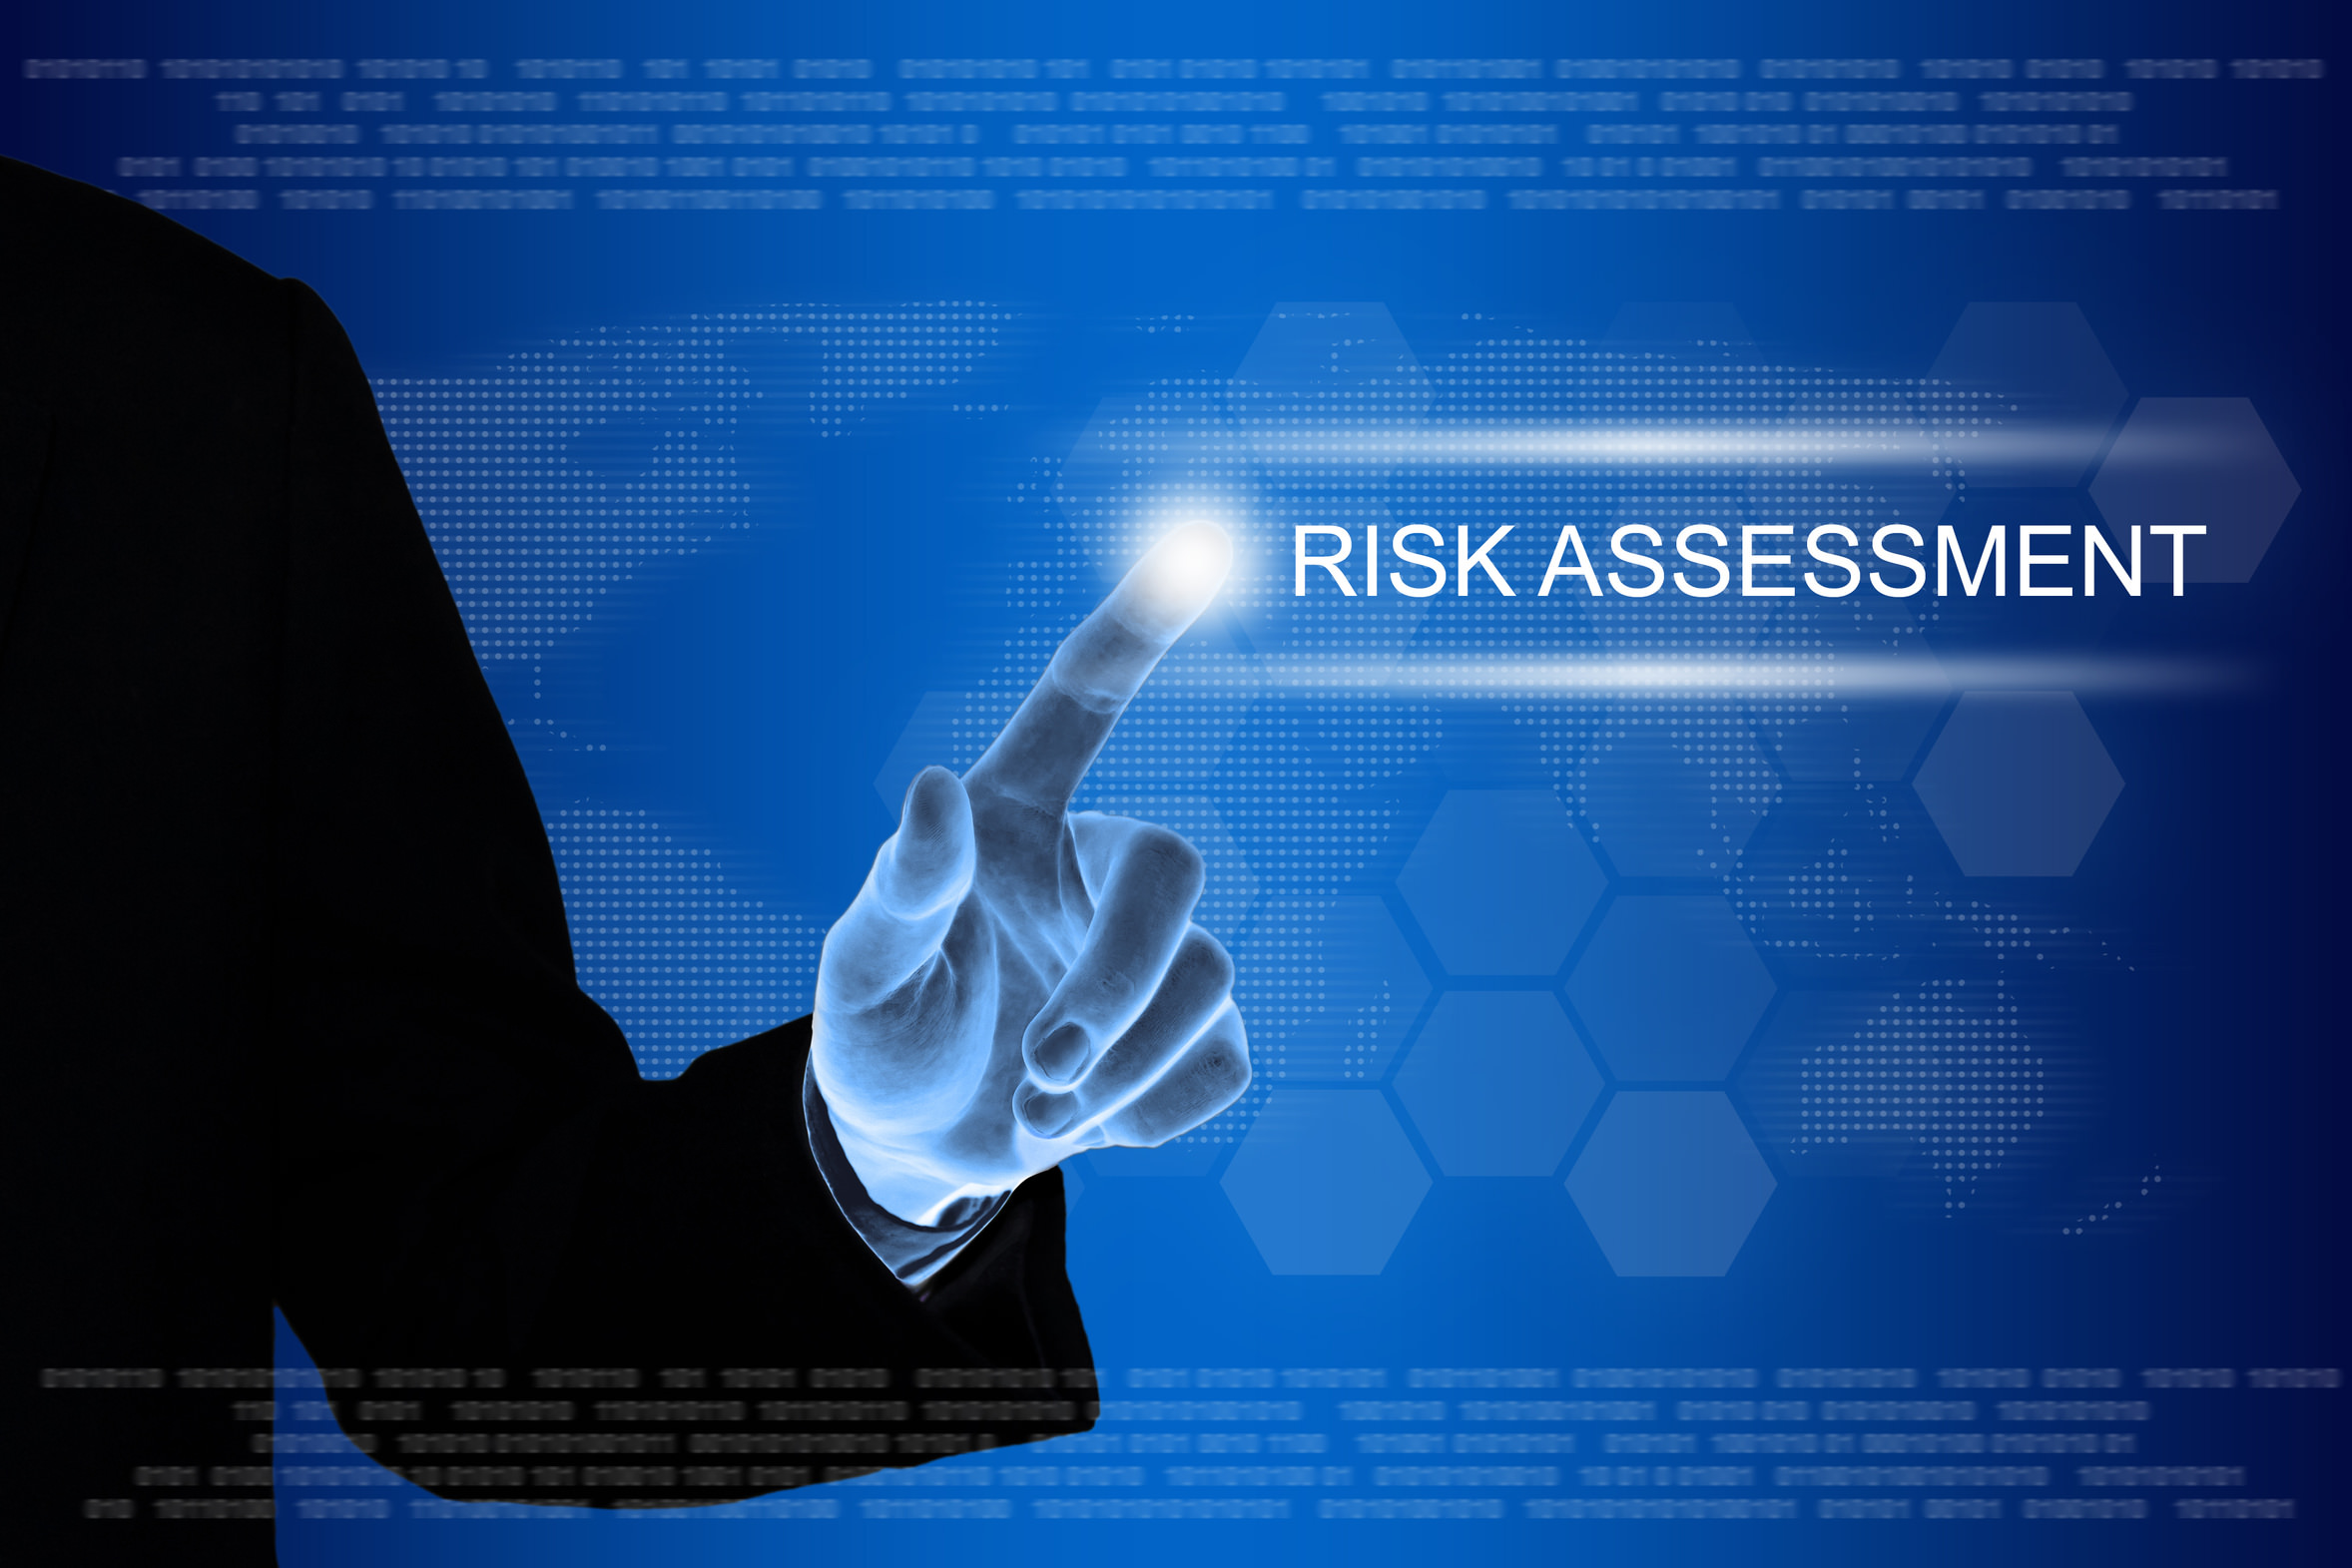 business hand pushing risk assessment button on a touch screen interface